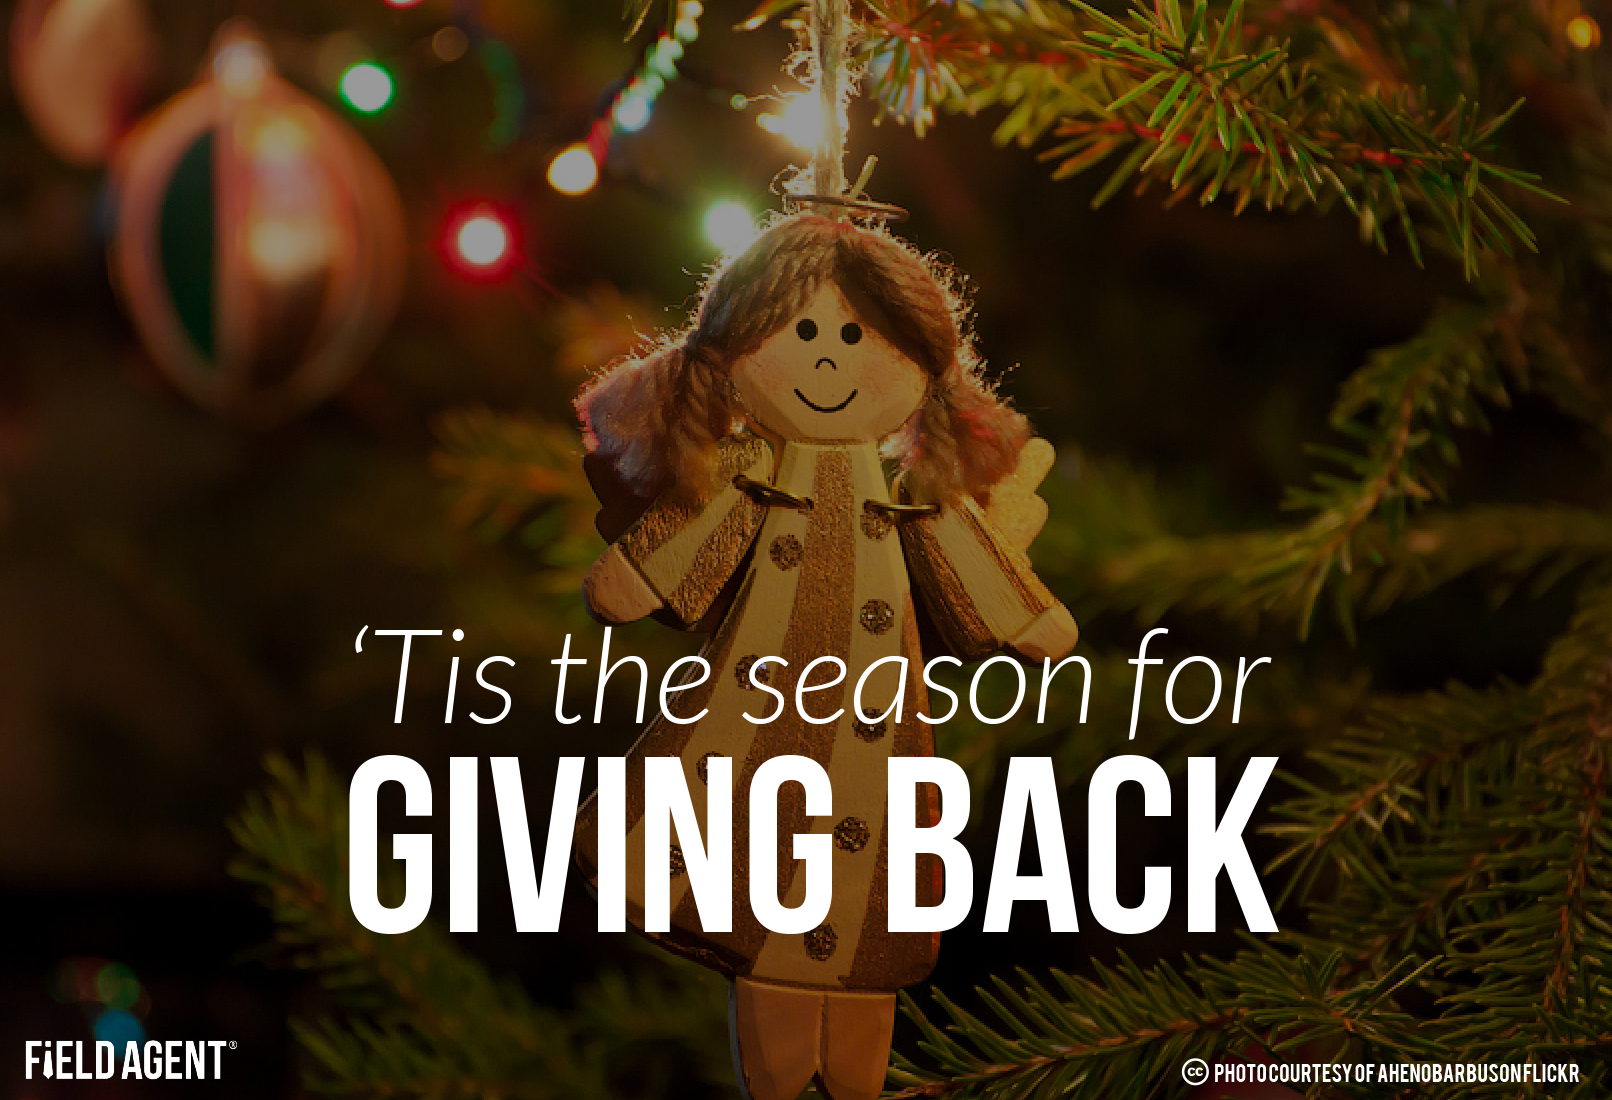 'Tis the season for Giving Back